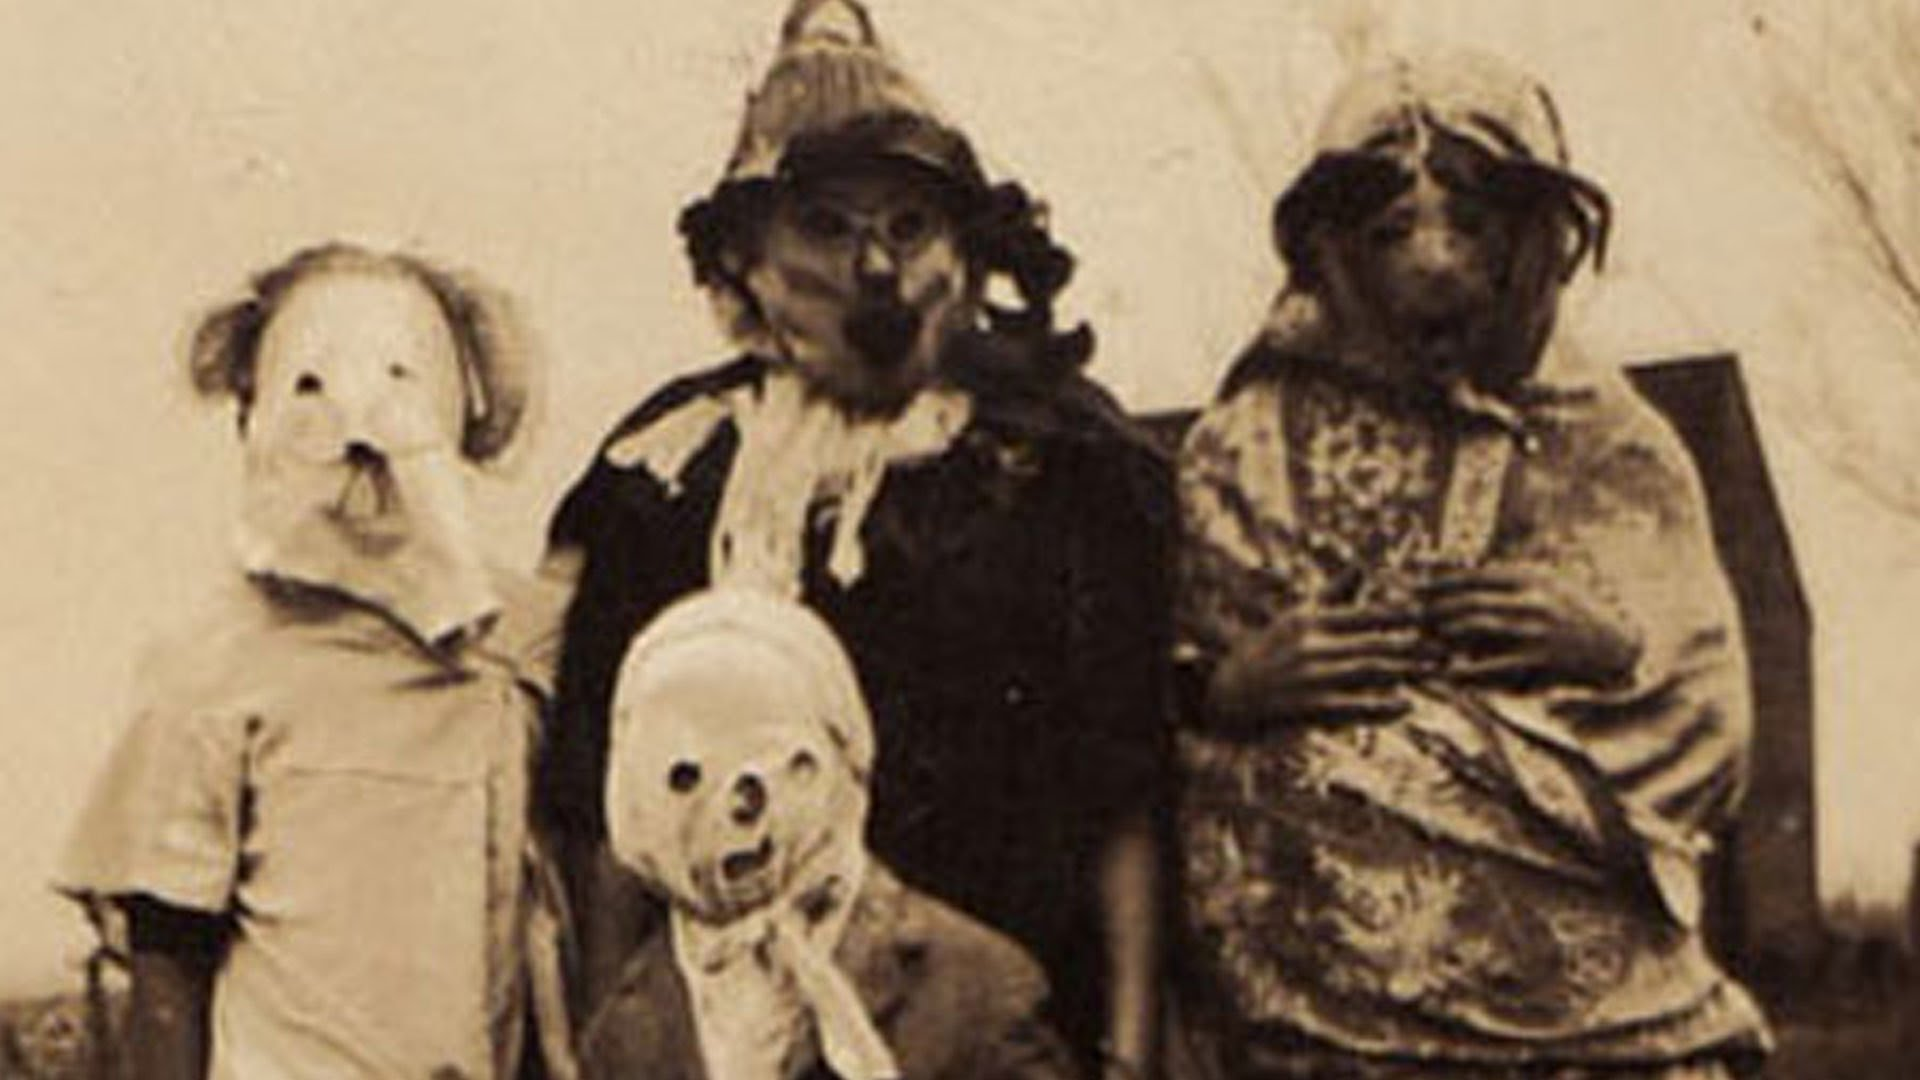 Creepy Costumes From Perturbing Clasic Halloween Images ...